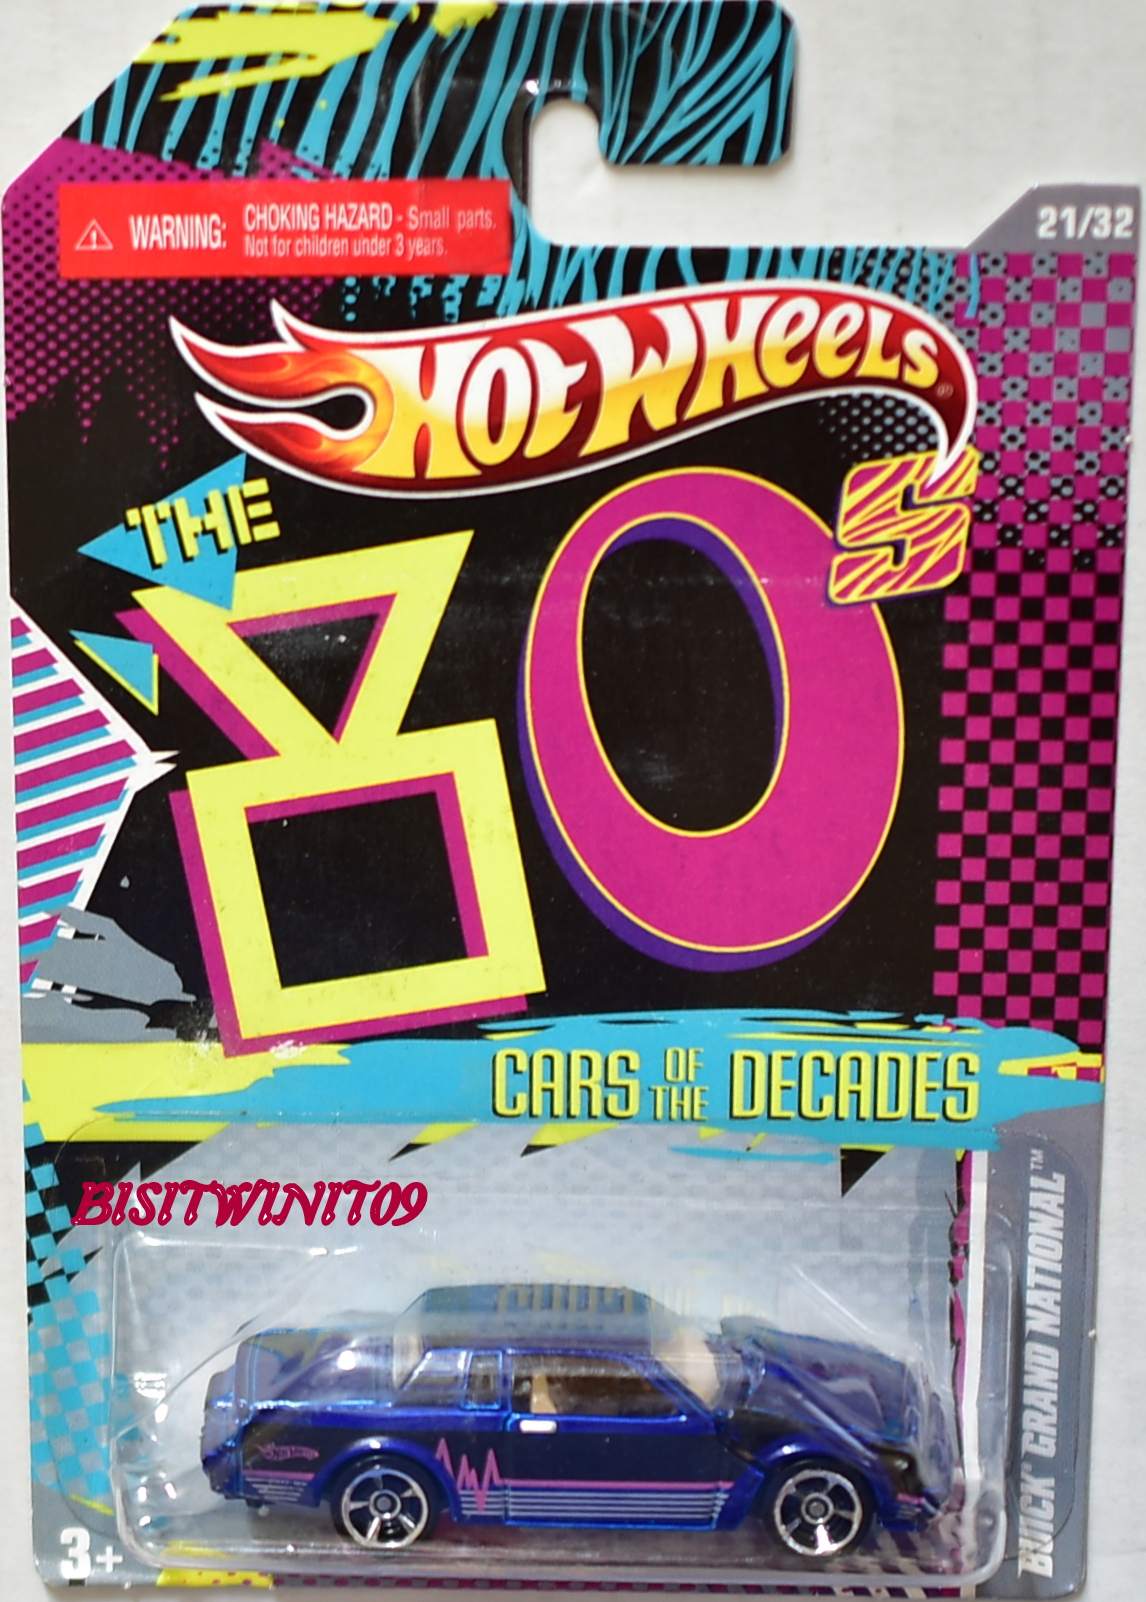 HOT WHEELS THE '80S CARS OF THE DECADES BUICK GRAND NATIONAL BLACK E+